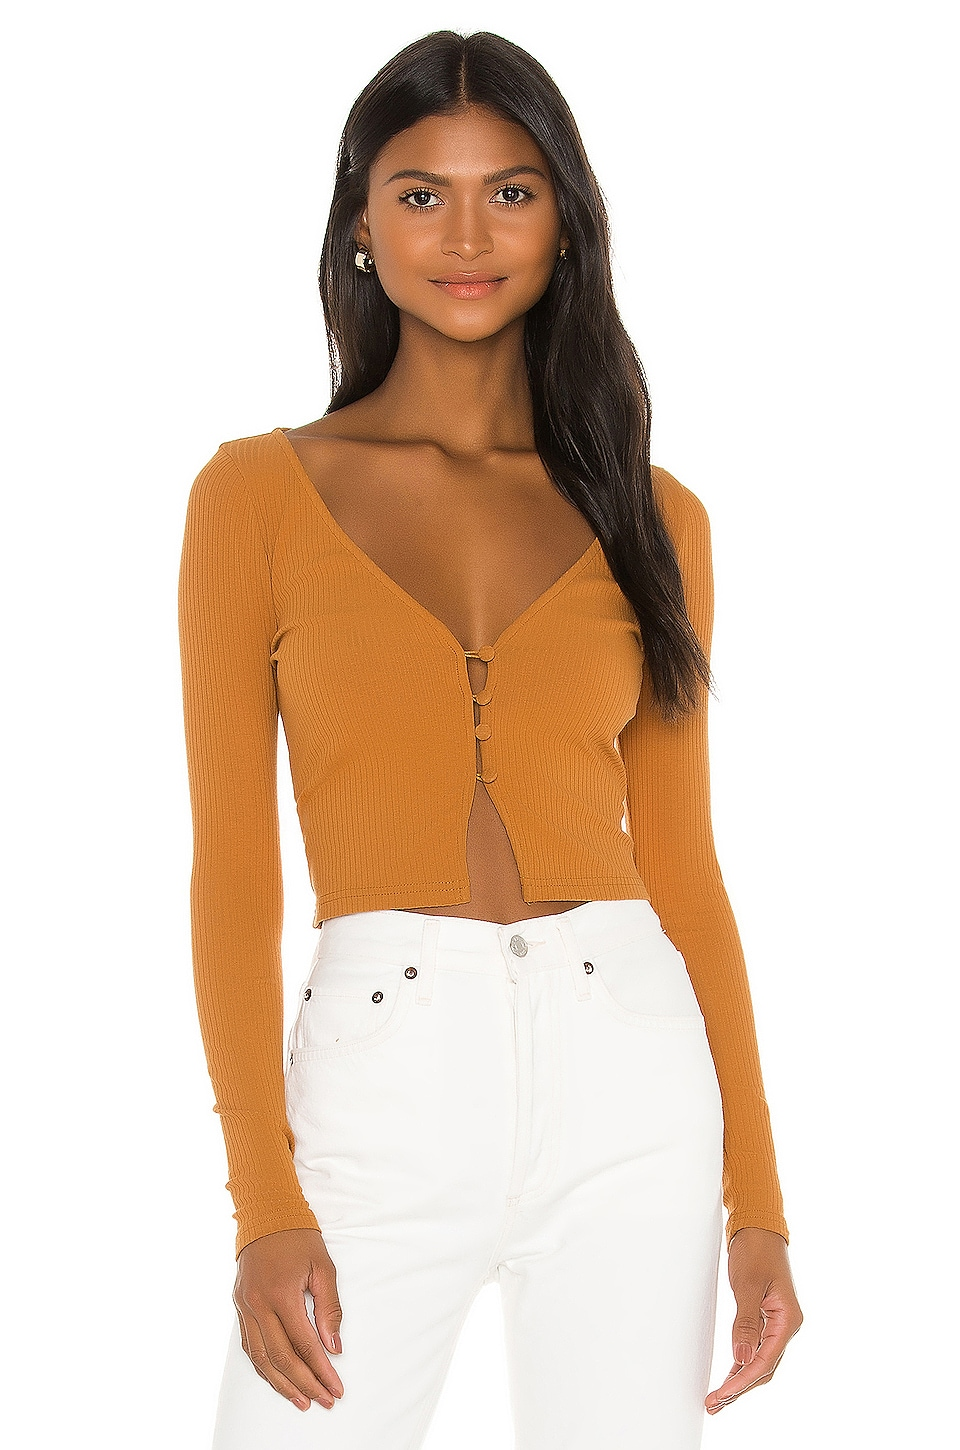 Privacy Please Parker Top in Golden Tan